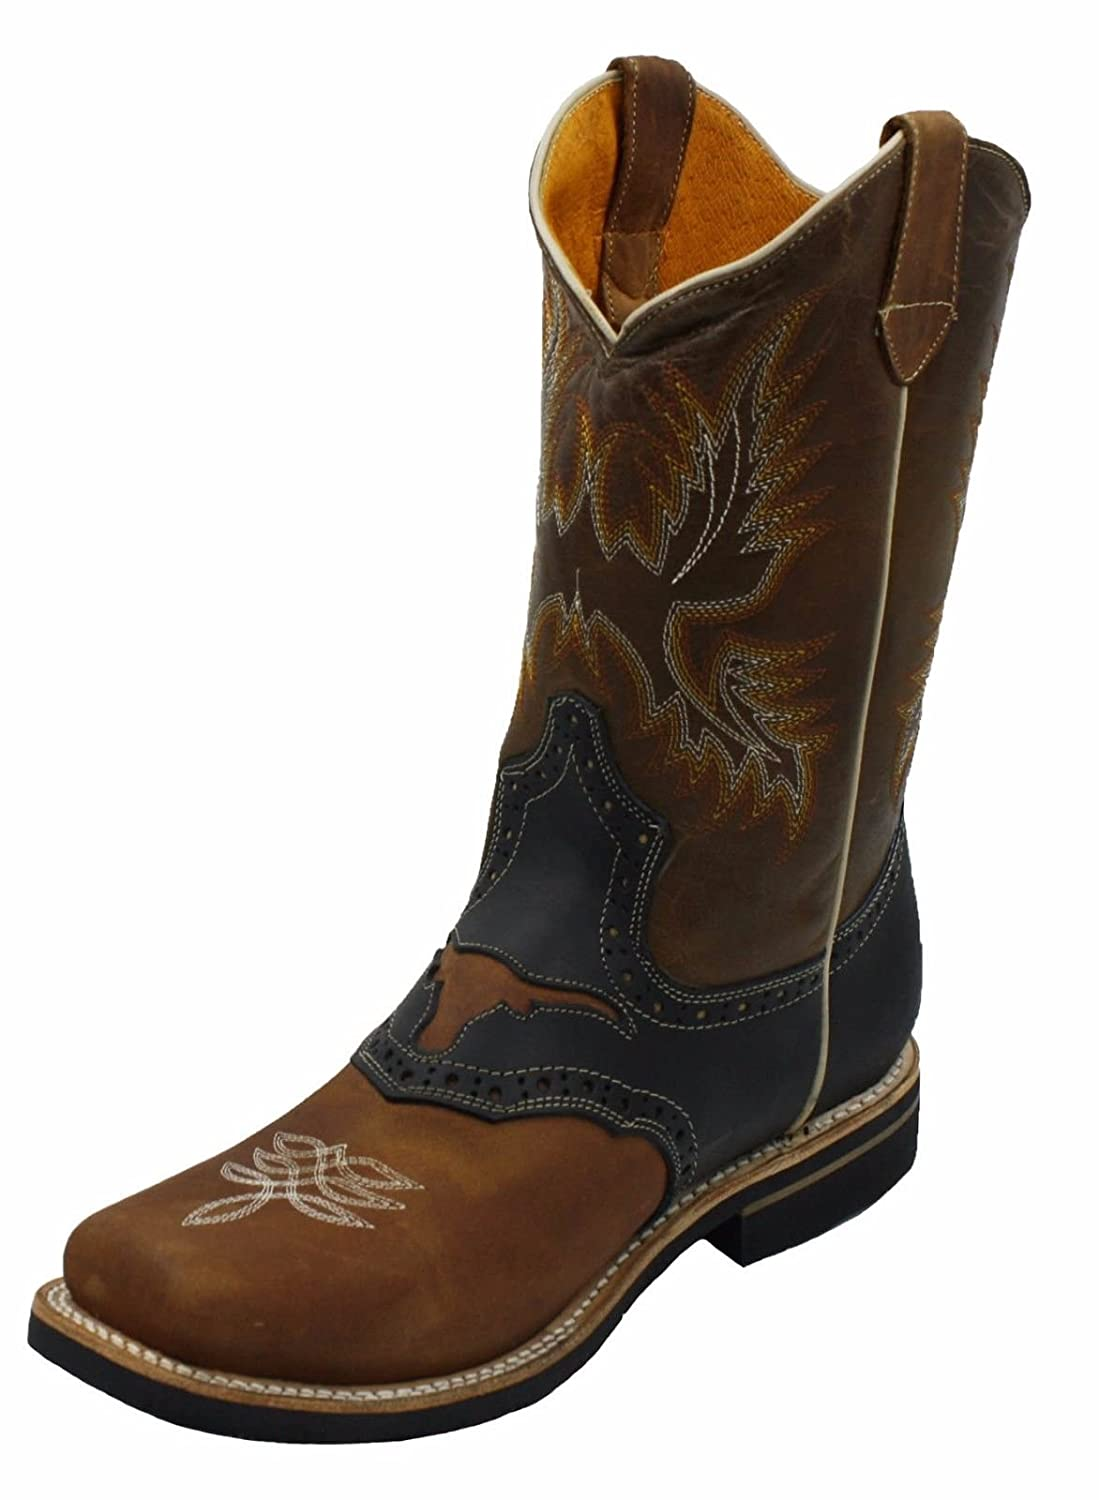 a0091bf90c5 Men Genuine Leather Square Toe decarative Shaft Western Cowboy Boots